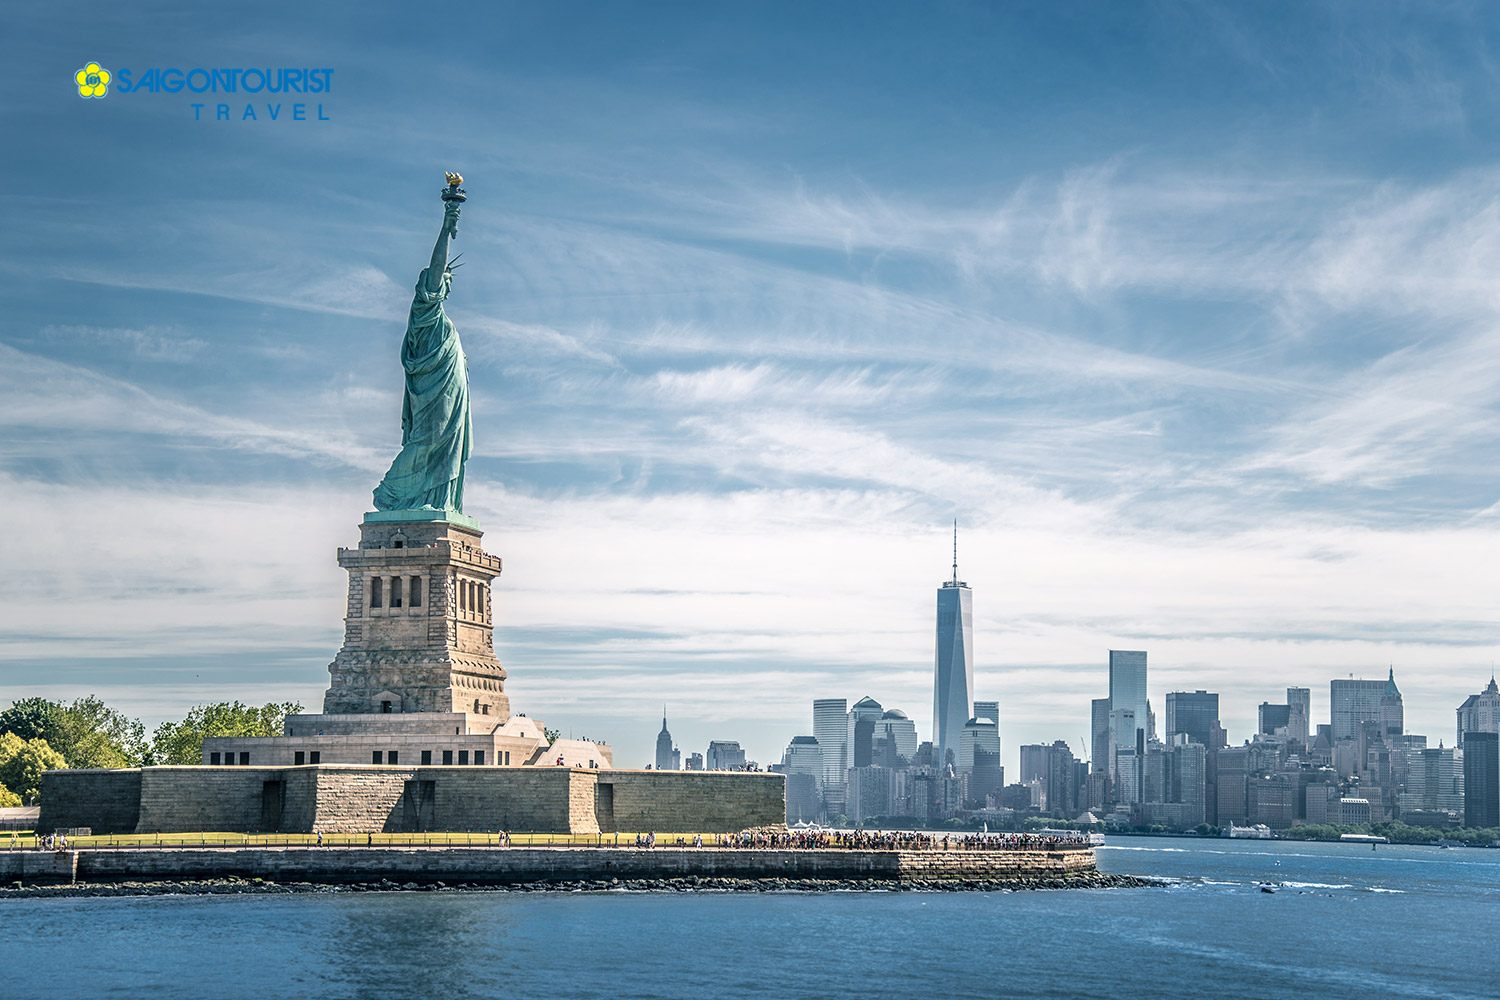 Du lịch Mỹ Cao Cấp [New York - Philadelphia - Washington D.C - Las Vegas - Grand Canyon - Universal Studios - Los Angeles]